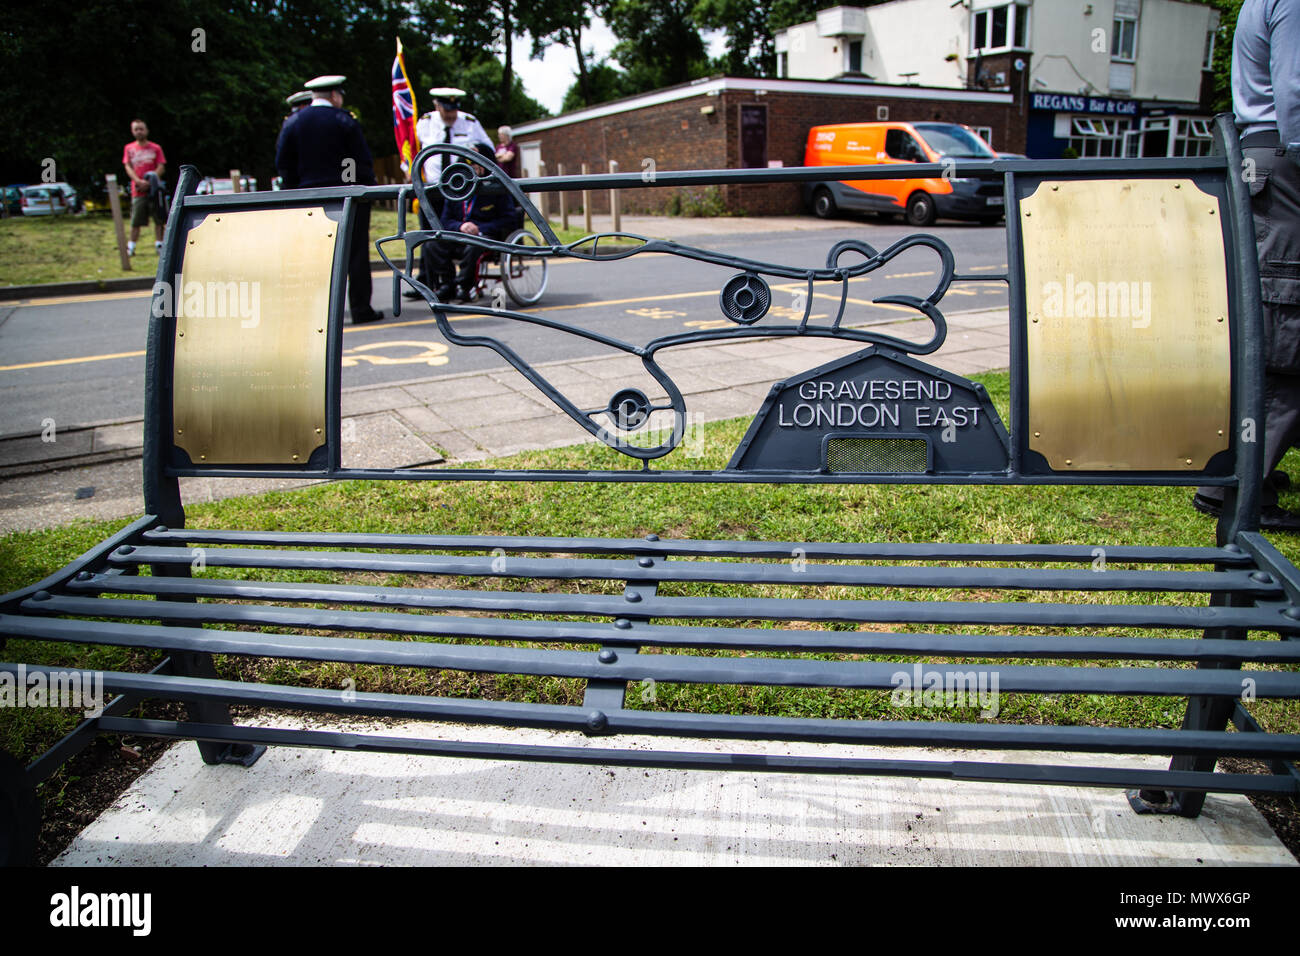 Gravesend Airport, Kent, UK. 2nd Jun, 2018. One of the two memorial benches unveiled at cascades leisure centre which is on the site of gravesend airport which saw action during the second world war. Credit A Beck/Alamy Live Credit: Andrew Beck/Alamy Live News - Stock Image